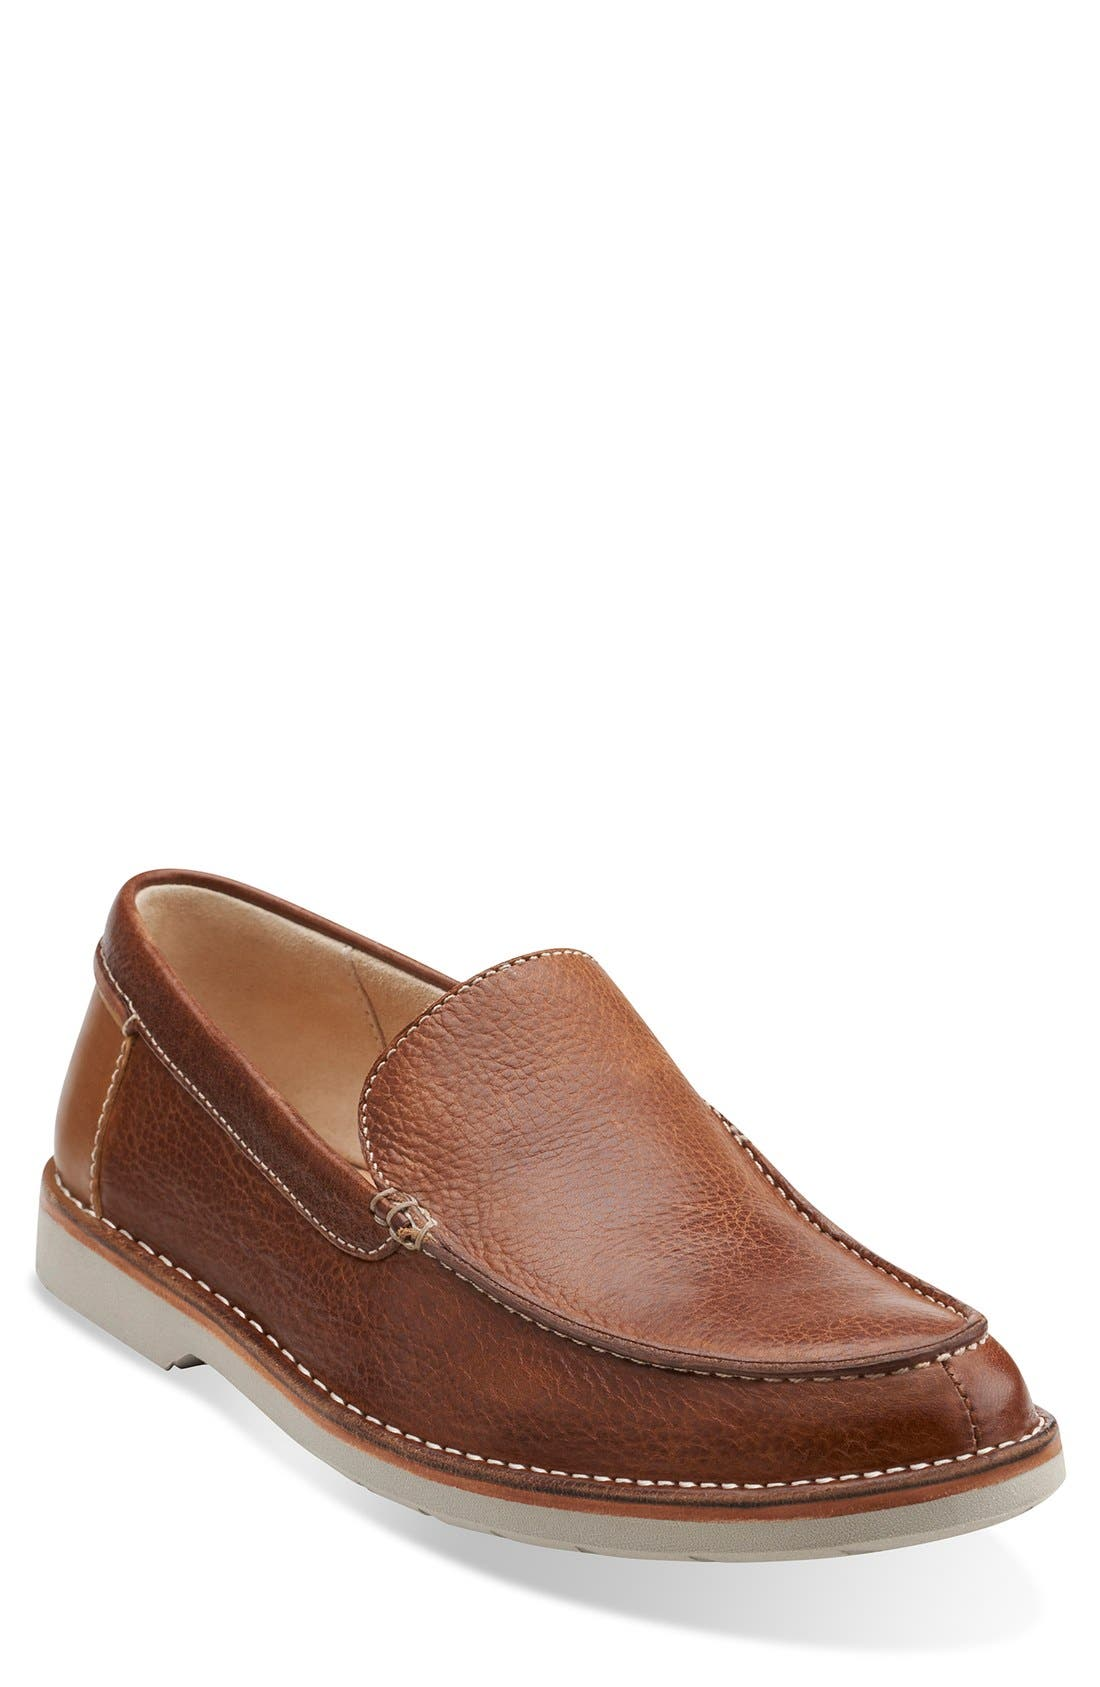 Clarks Tan Mens Leather Hinton Sun Loafers